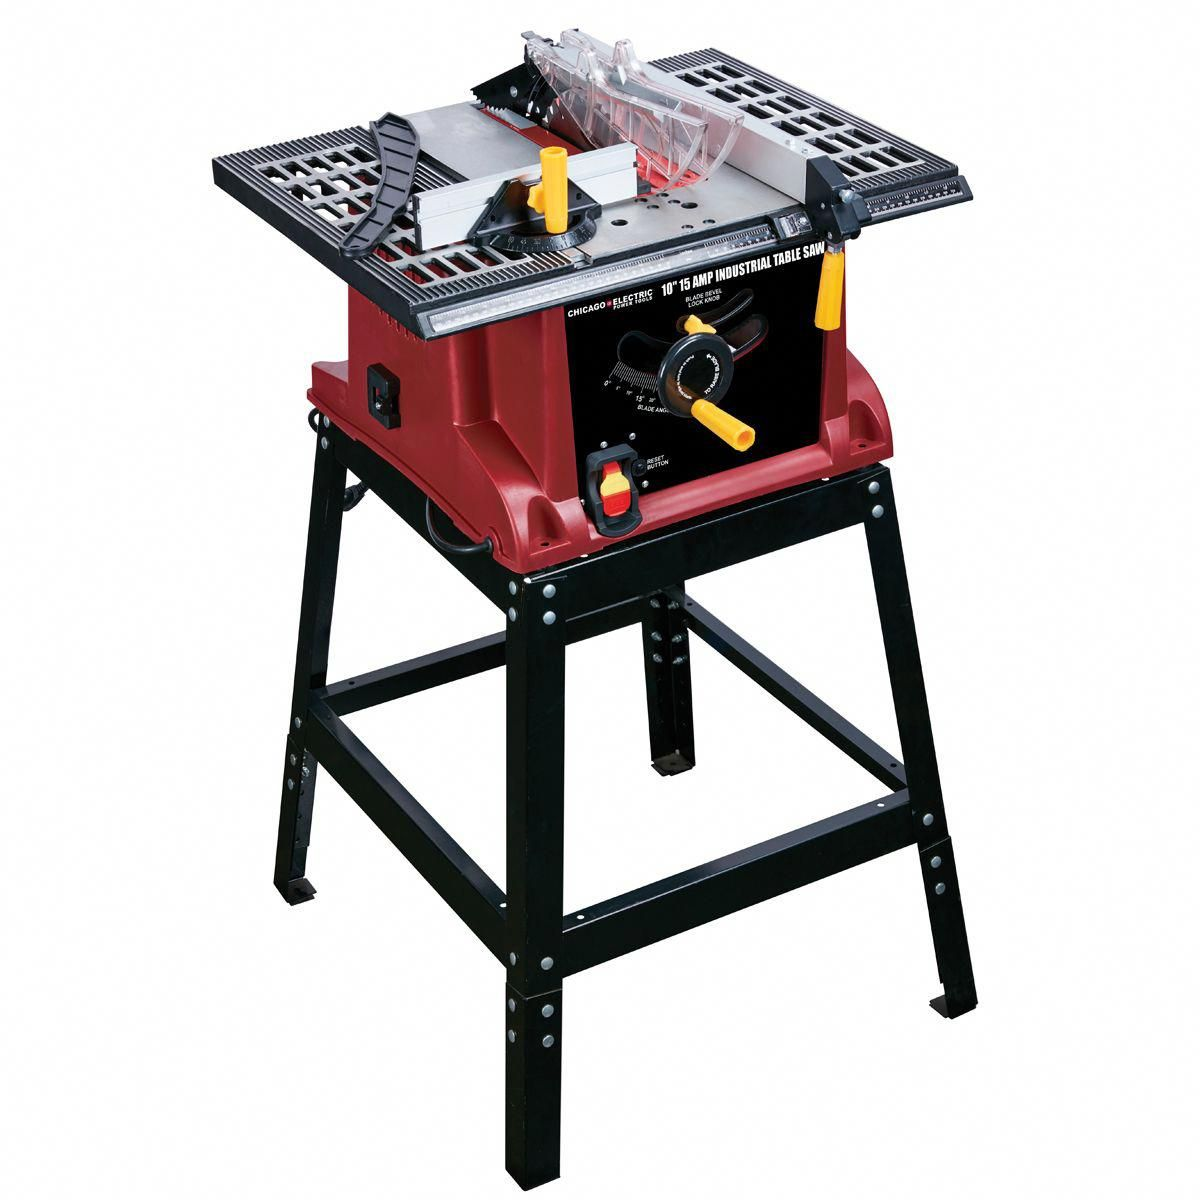 Setting Up Shop Hand Power Tools Benchtop table saw